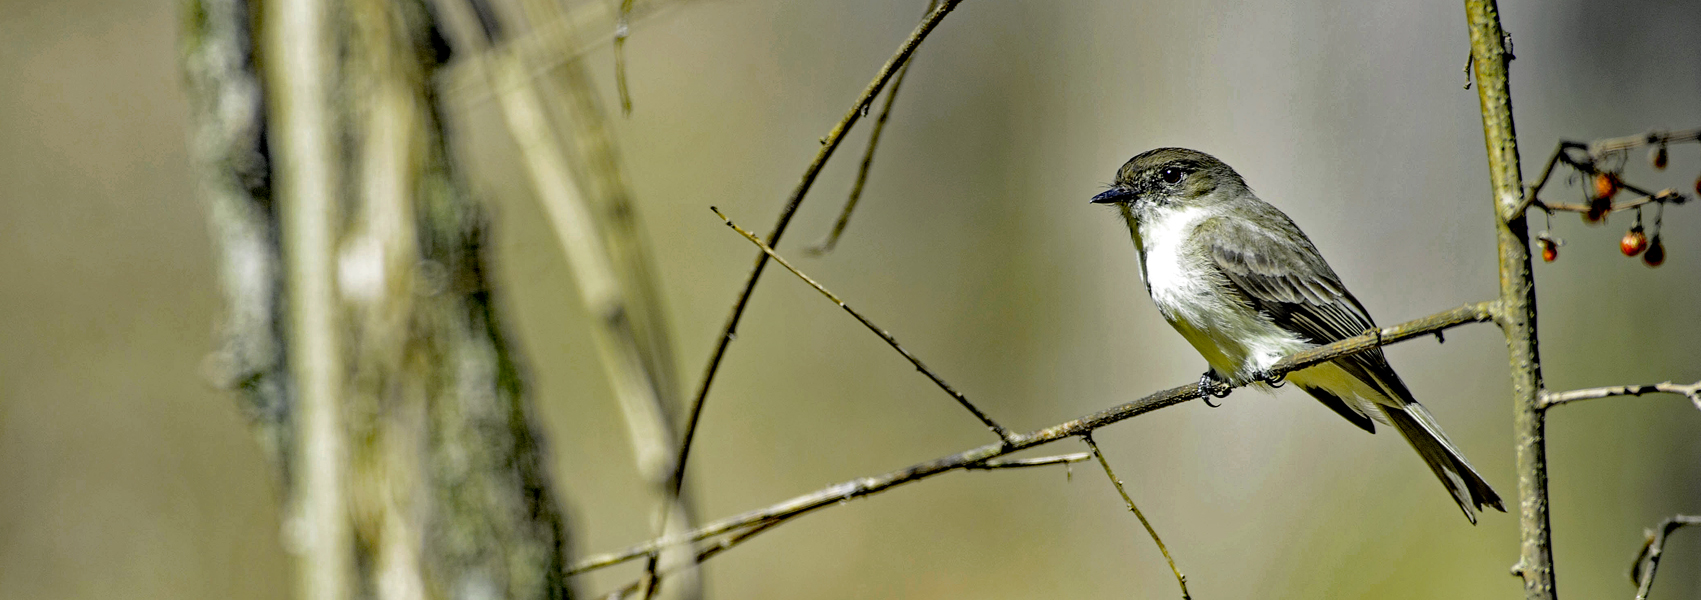 A small bird sits on a tree branch